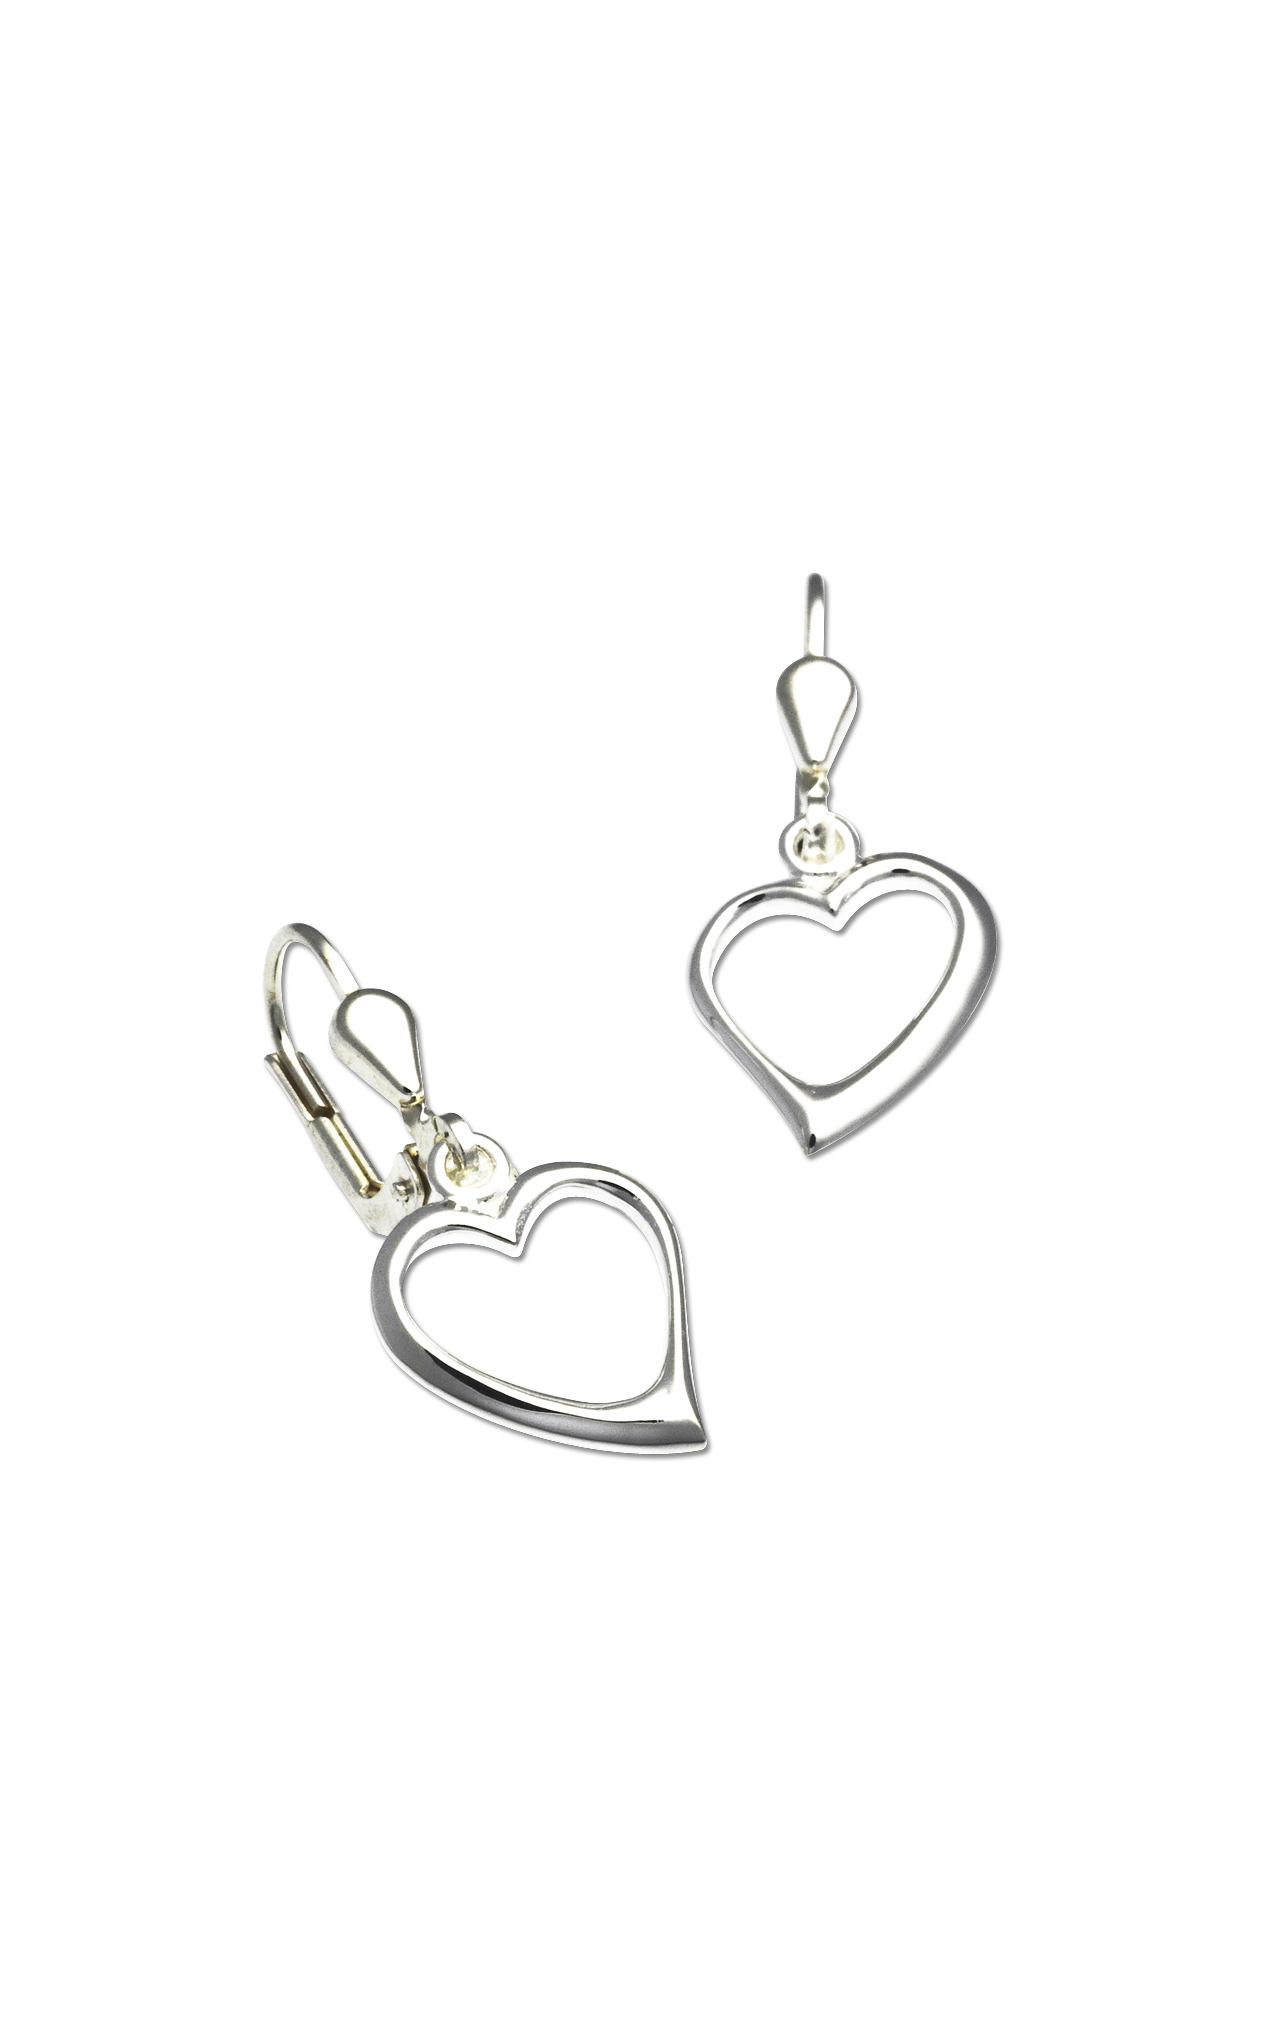 Zina Contemporary Earrings B113 product image